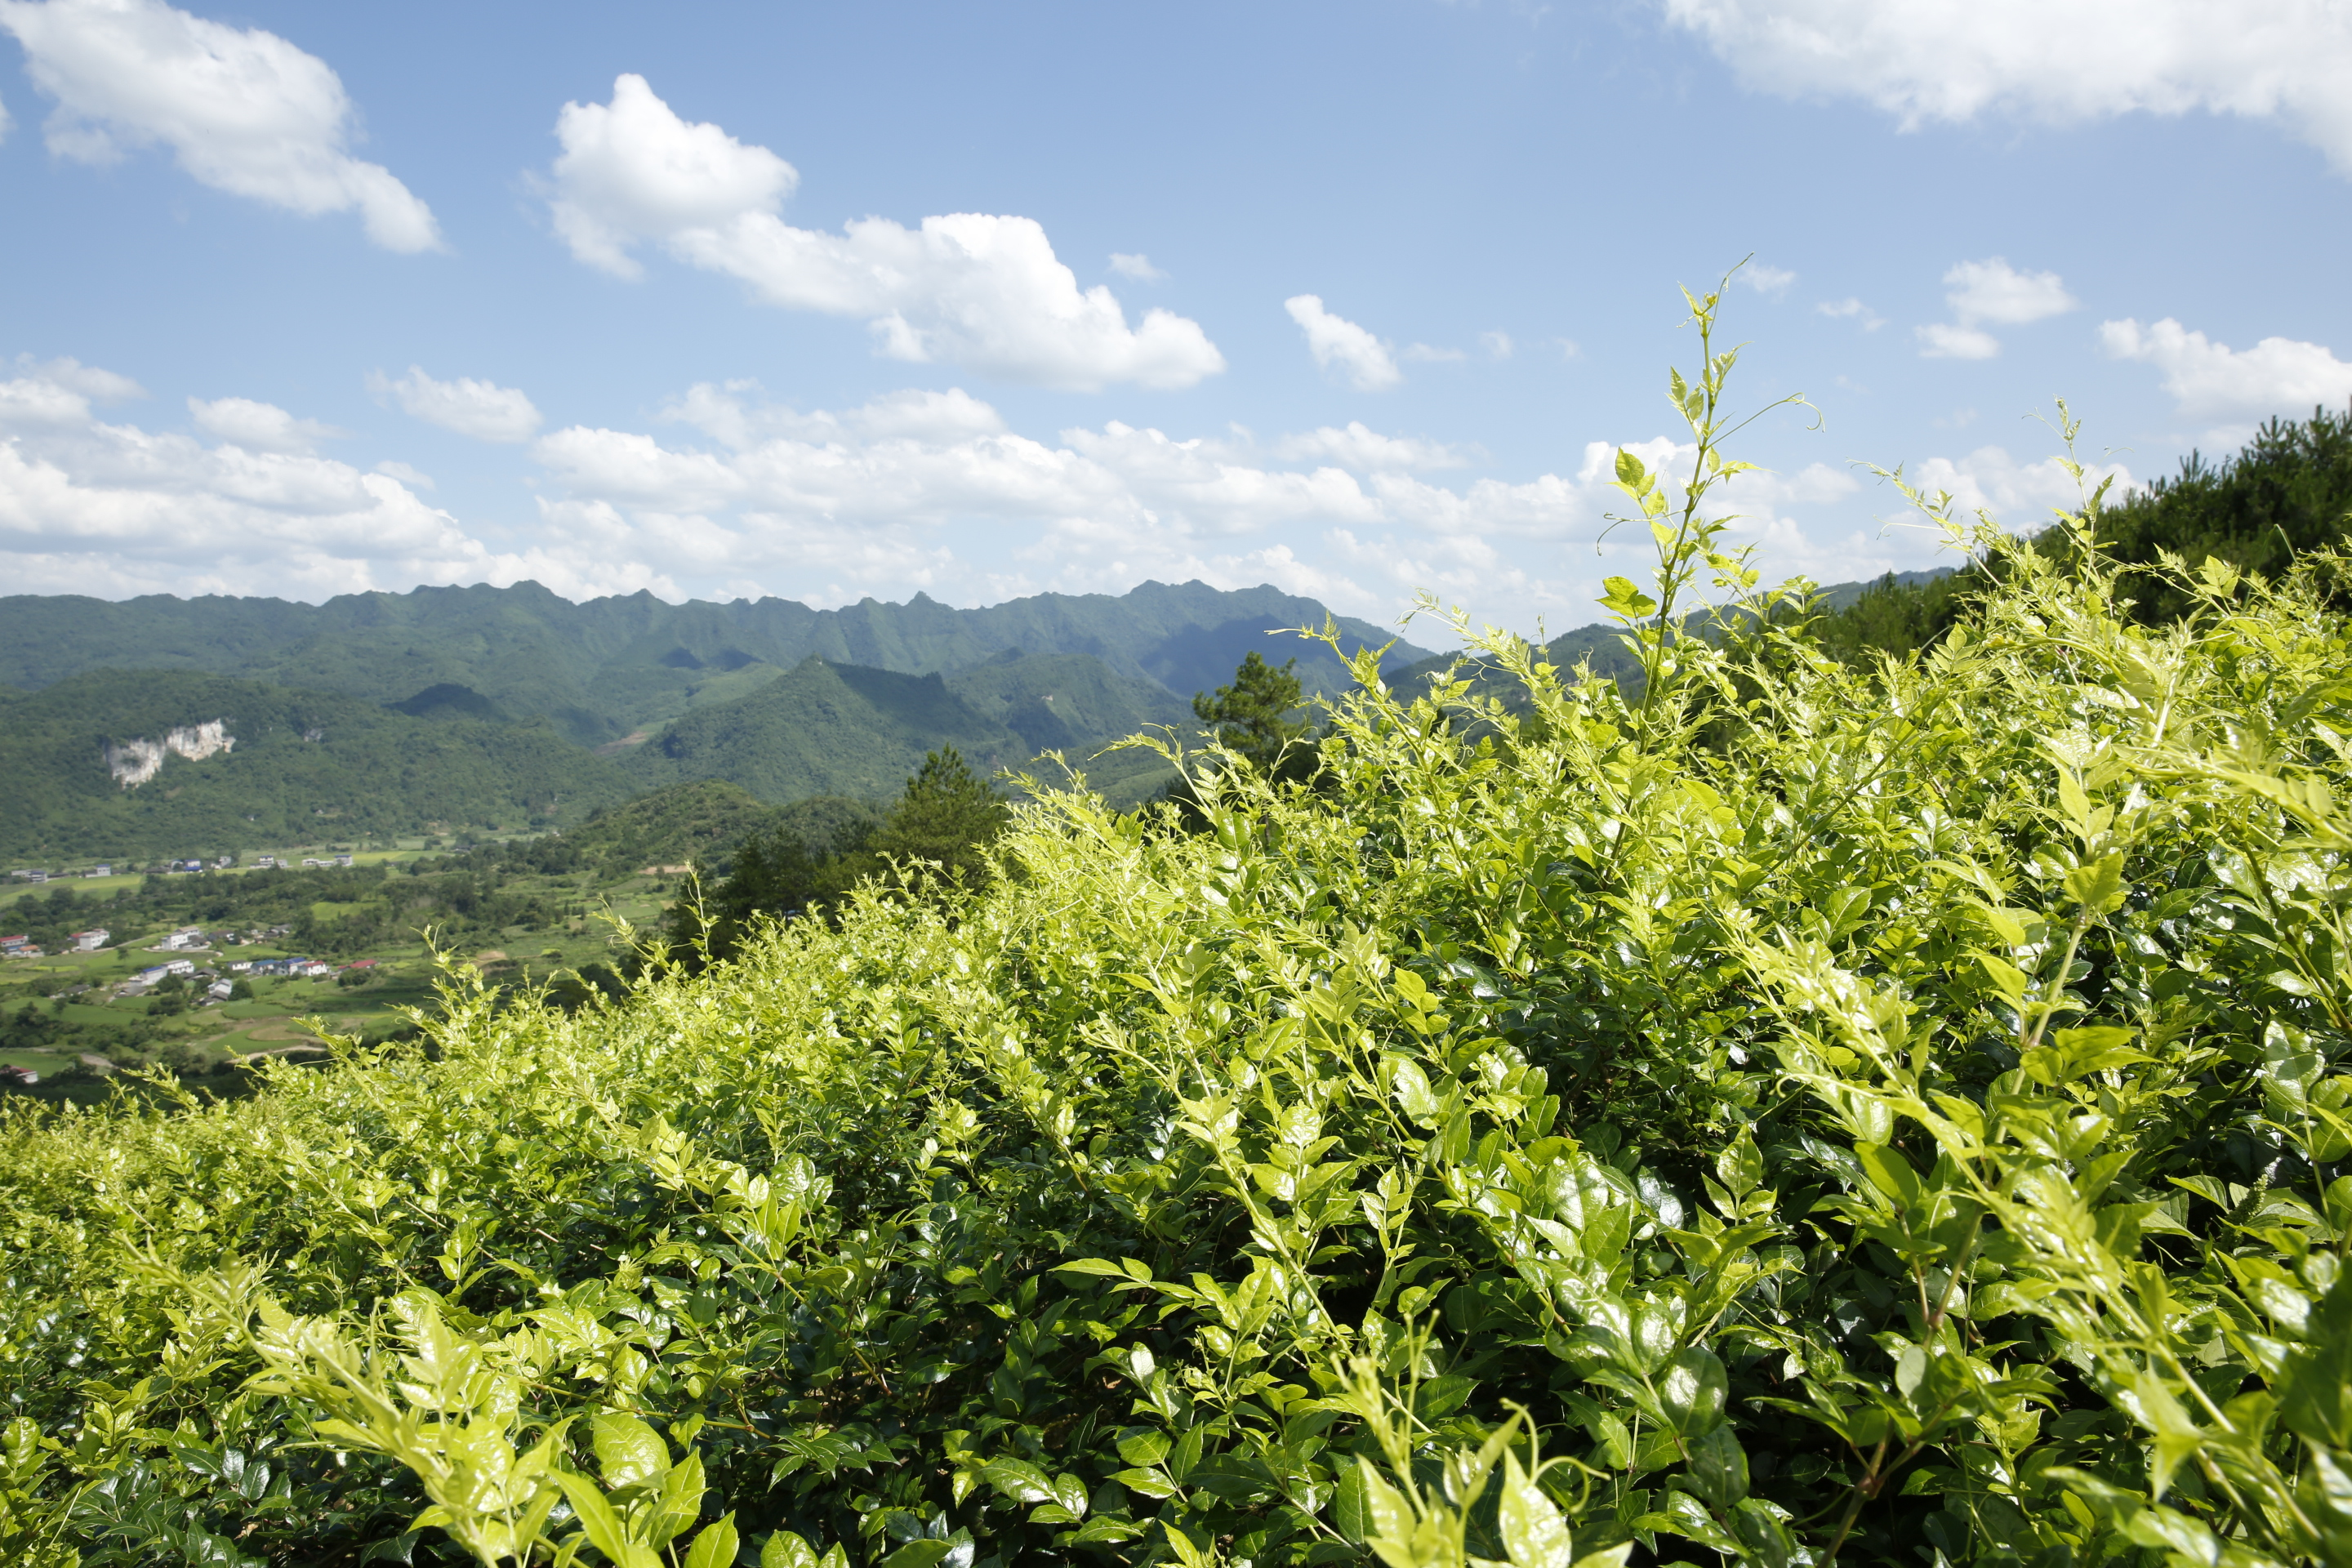 Moyeam vine tea farm land